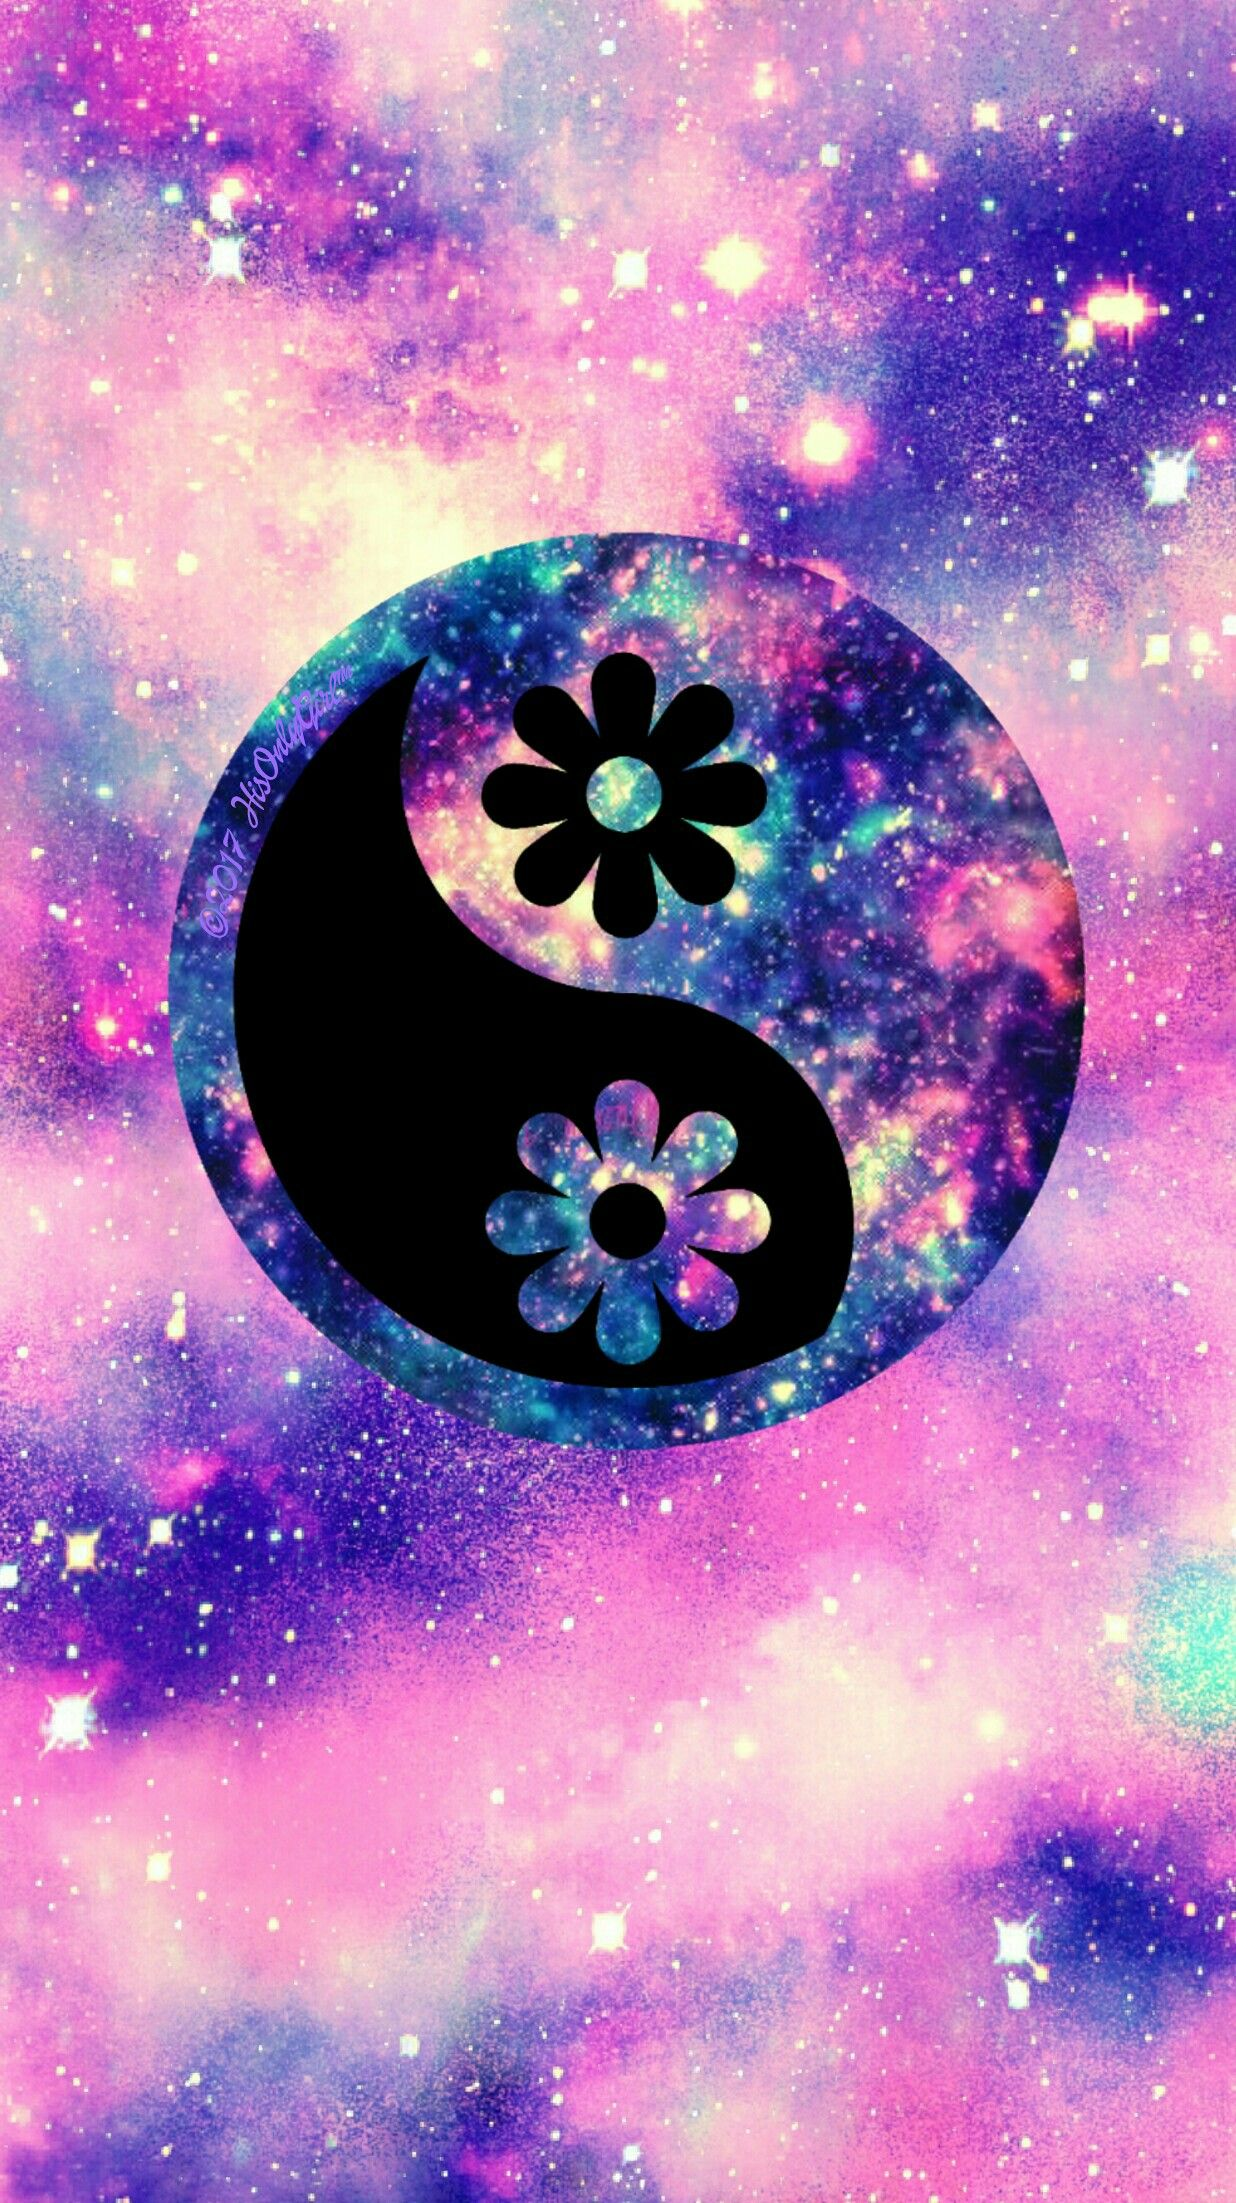 Flower yin yang galaxy wallpaper I created for the app